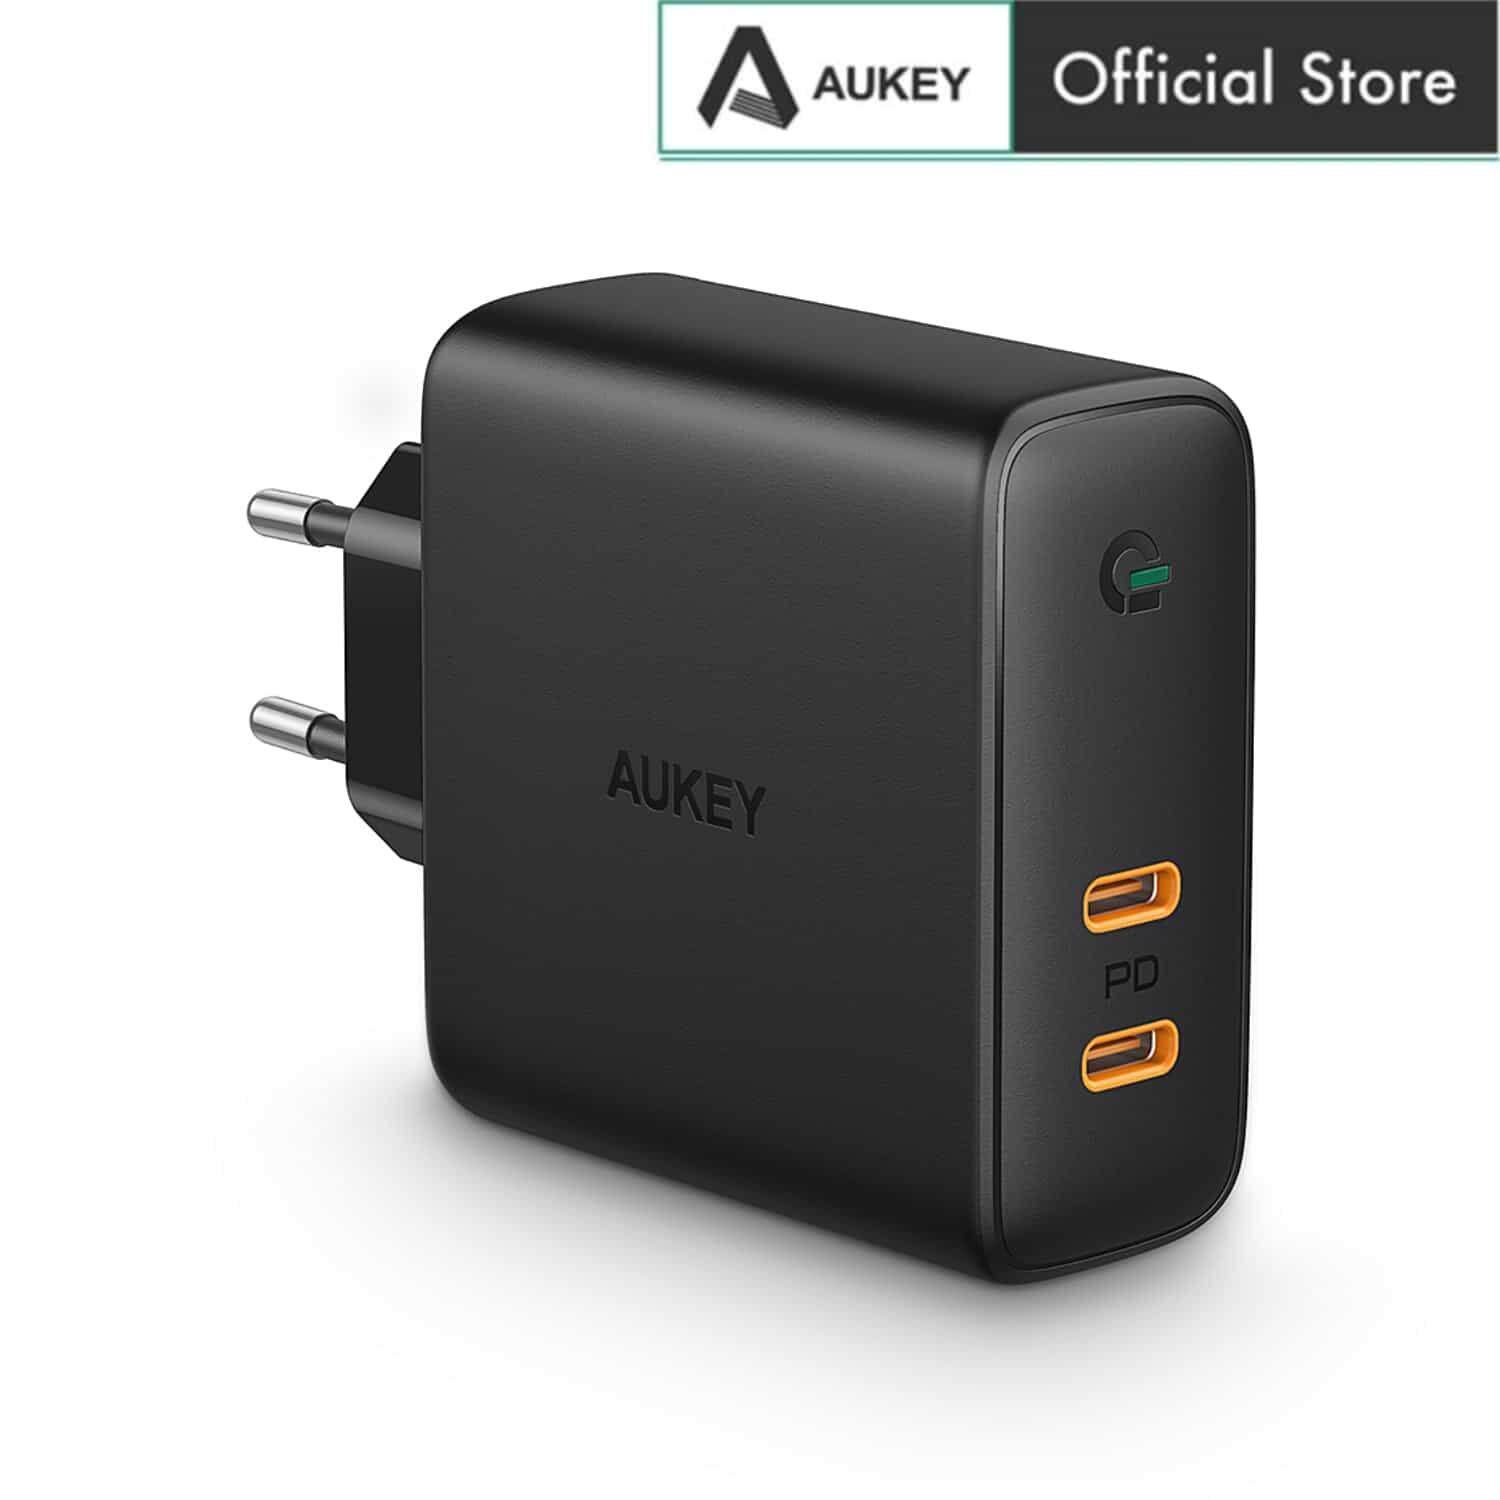 [12.12 Crazy Brand Mega Offers]Aukey PA-D5 60W USB C Power Delivery Charger with Dynamic Detect -EU Plug